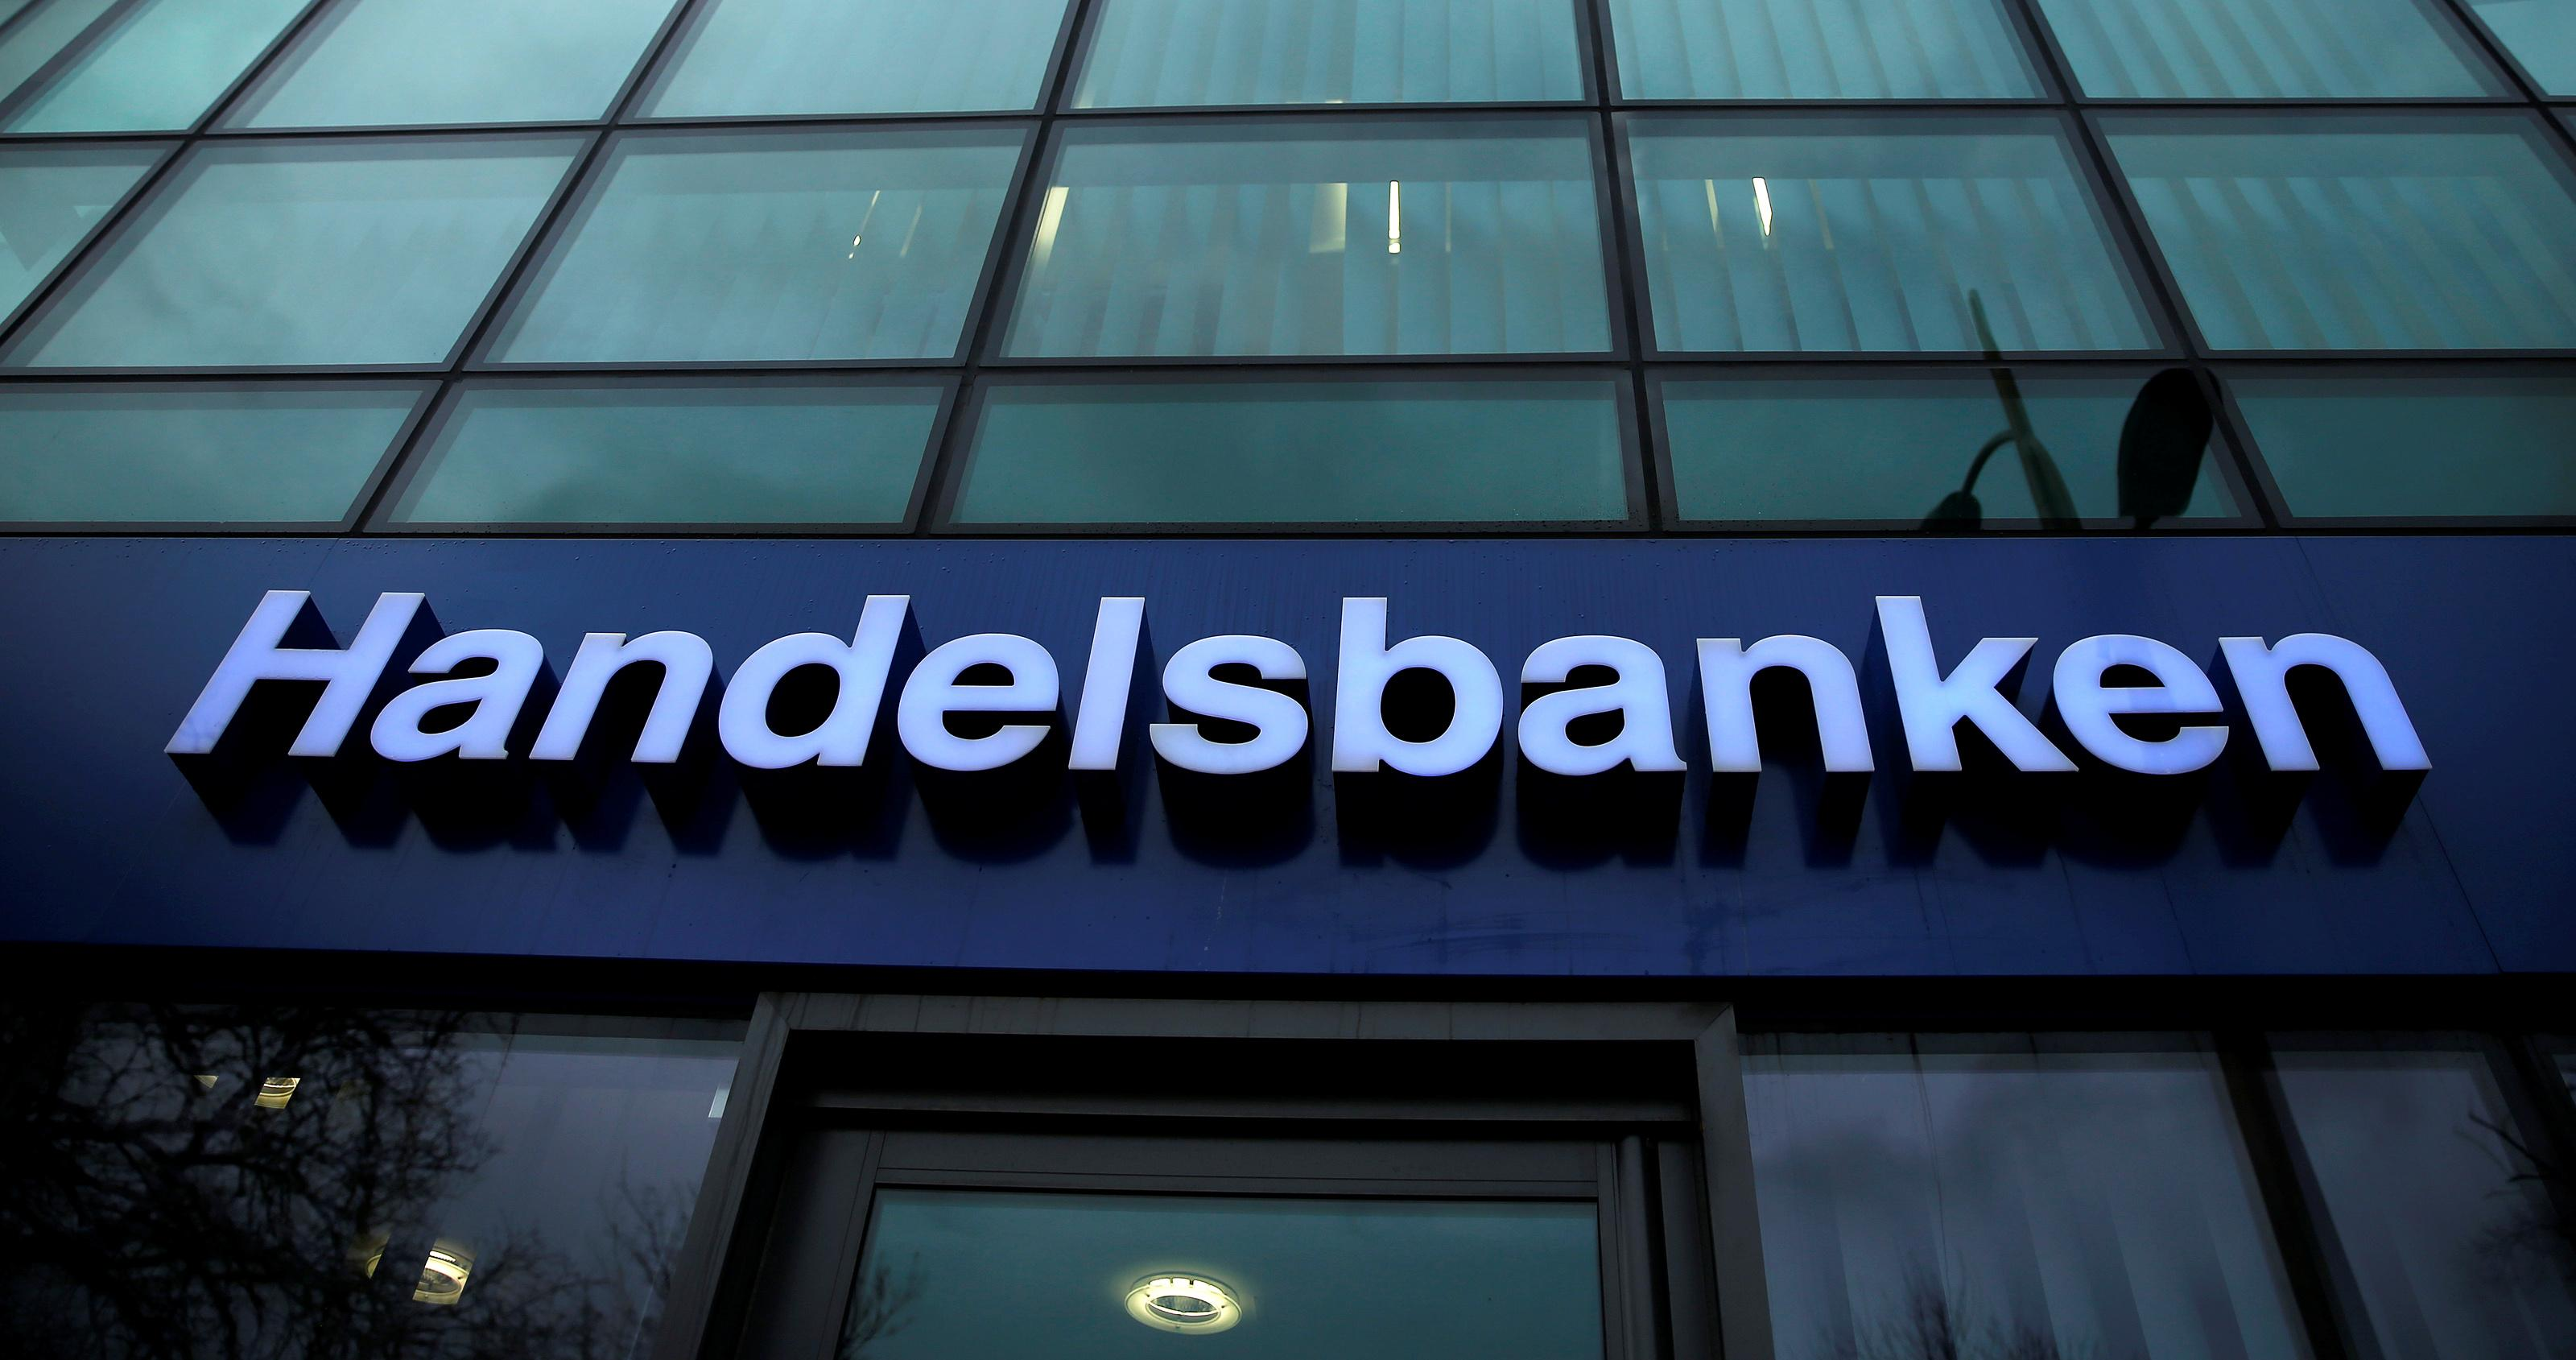 Sweden's Handelsbanken to cut 800 jobs, pull out of Asia and Germany